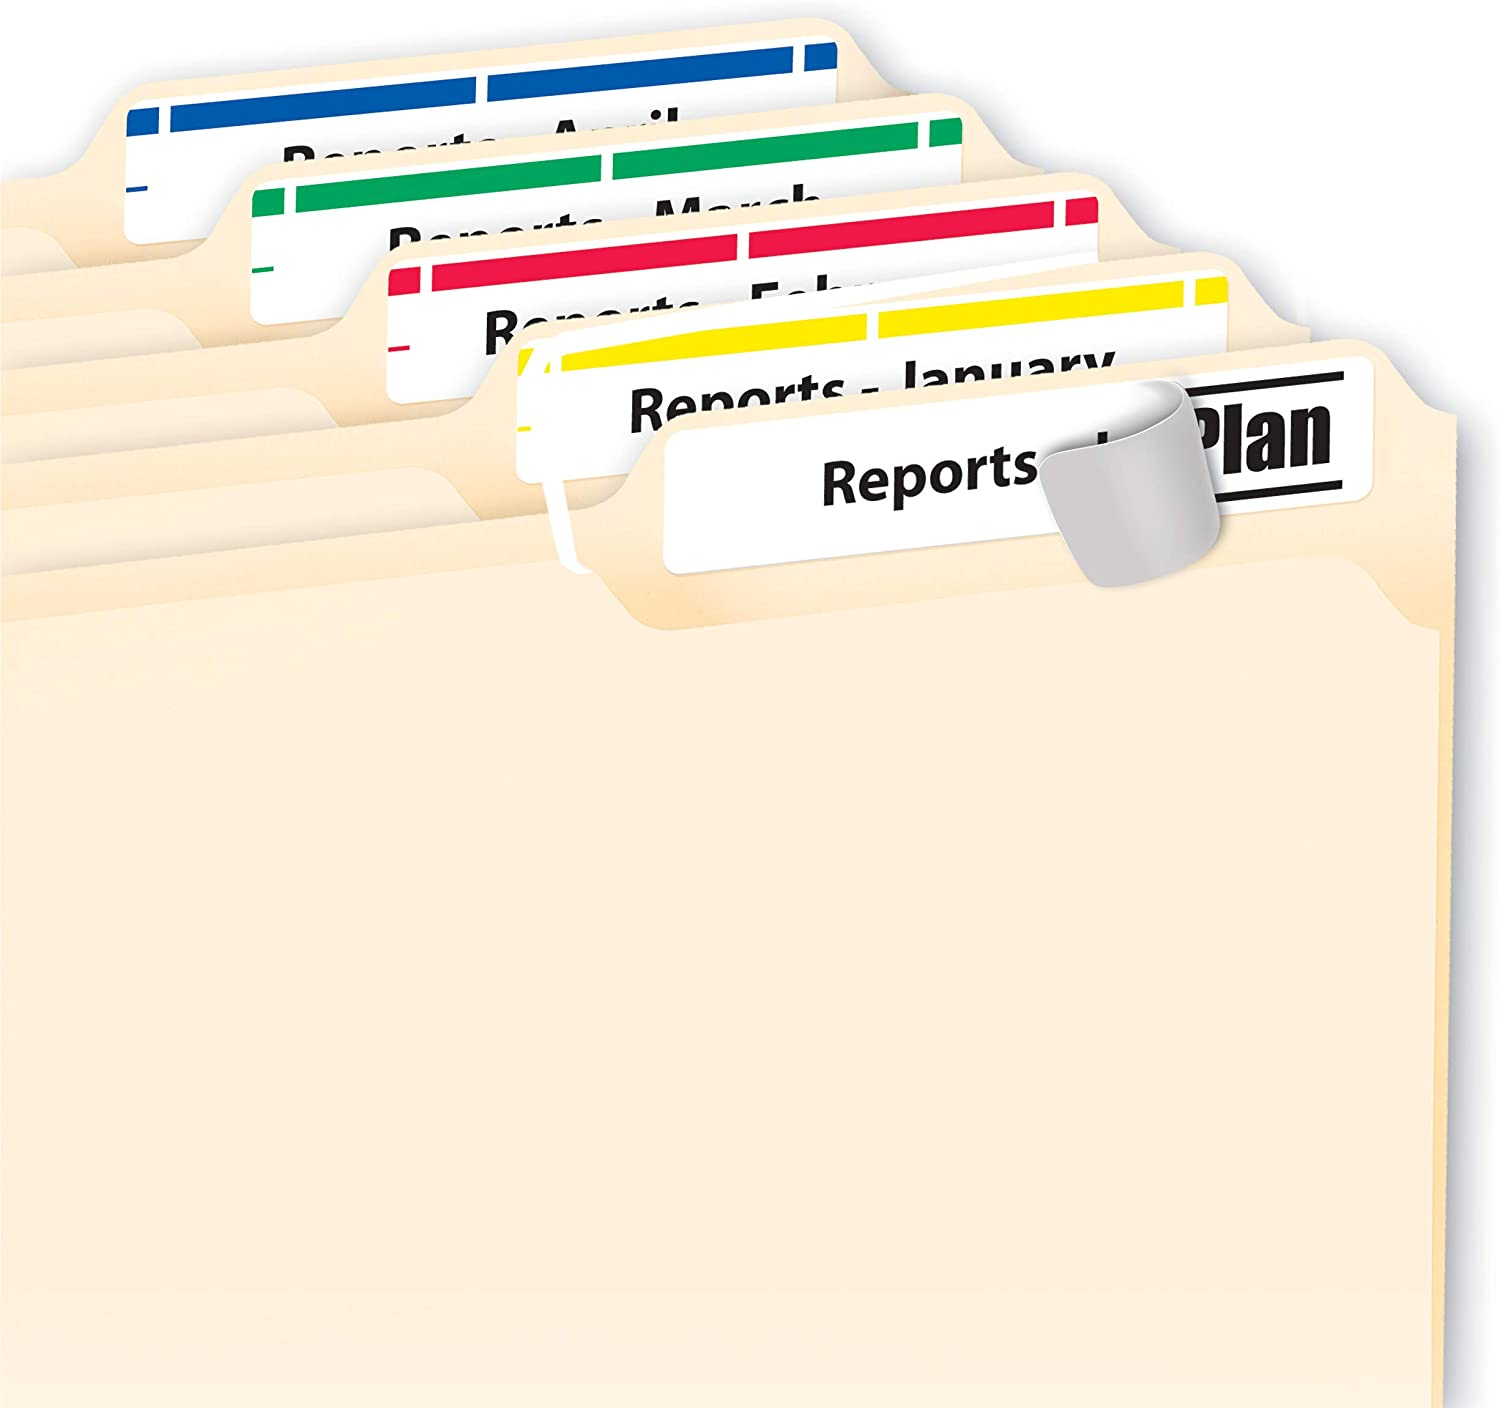 0.67 x 3.43 Inches 5266 10 Packs Avery File Folder Labels in Assorted Colors for Laser and Inkjet Printers with TrueBlock Technology